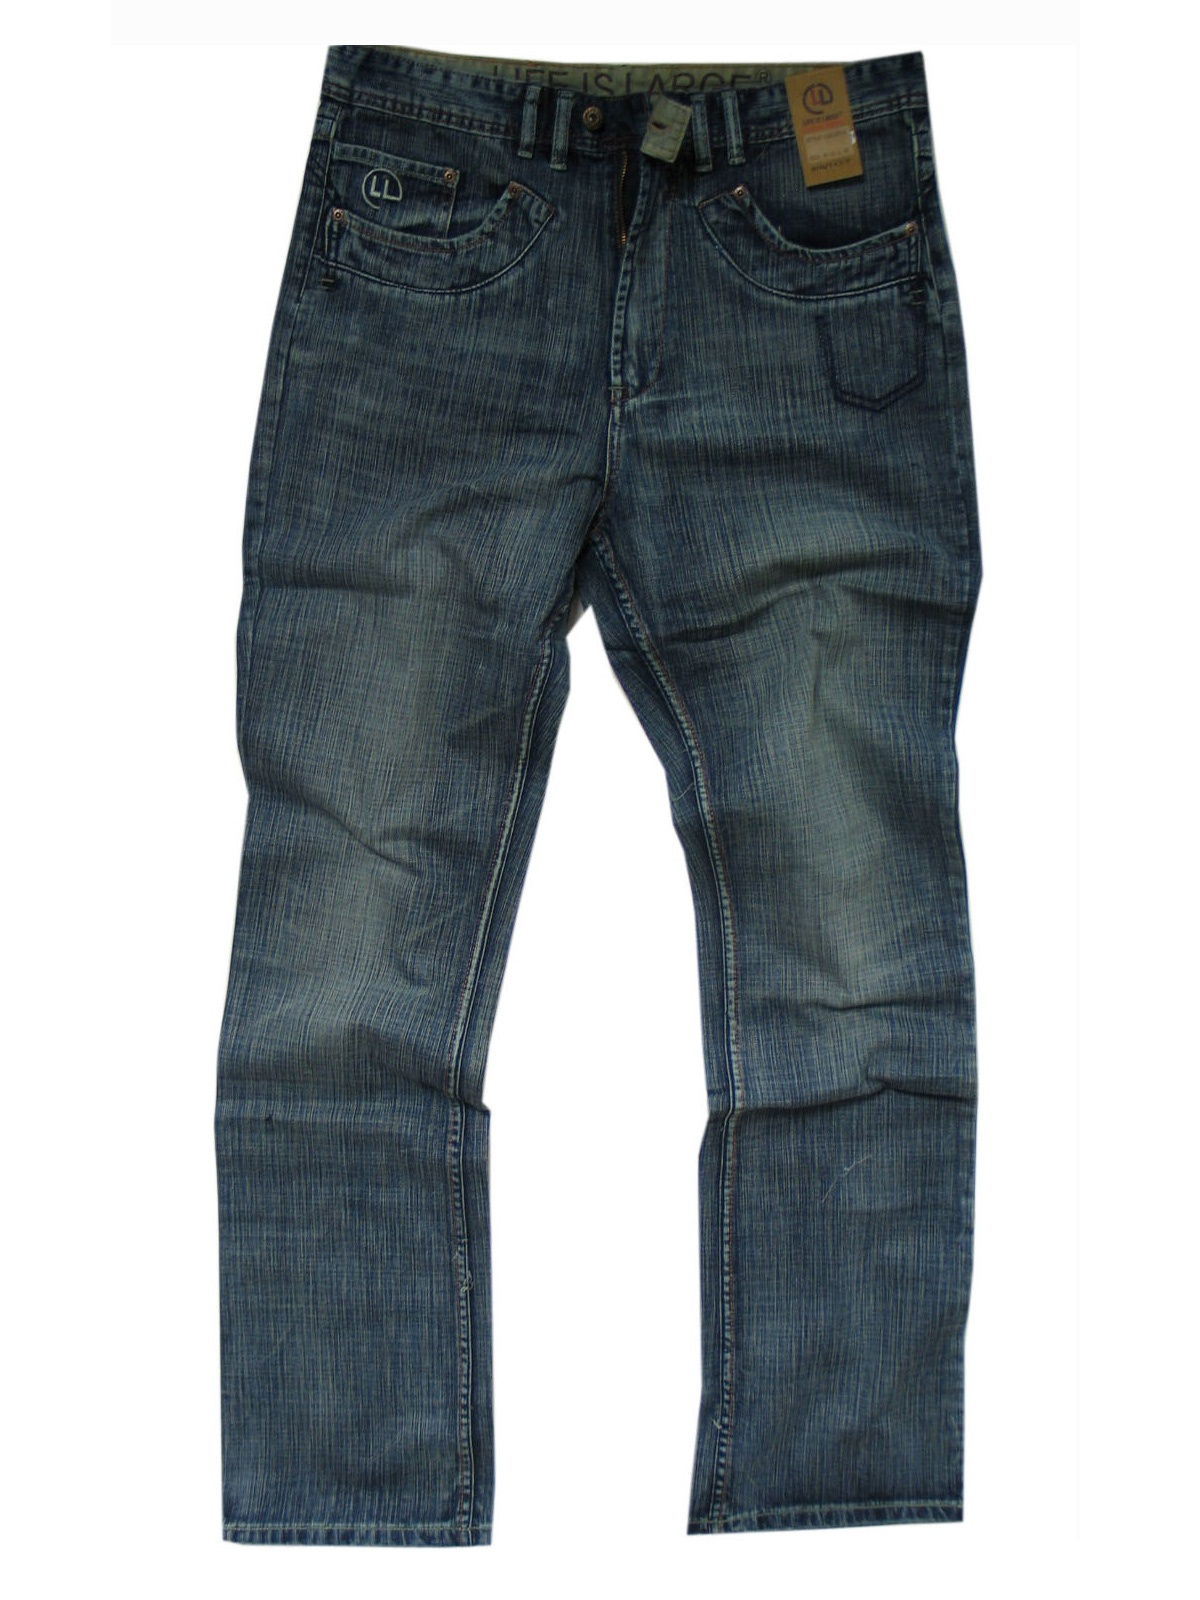 Shop Dillard's selection of men's big and tall jeans, available in your favorite styles and brands.